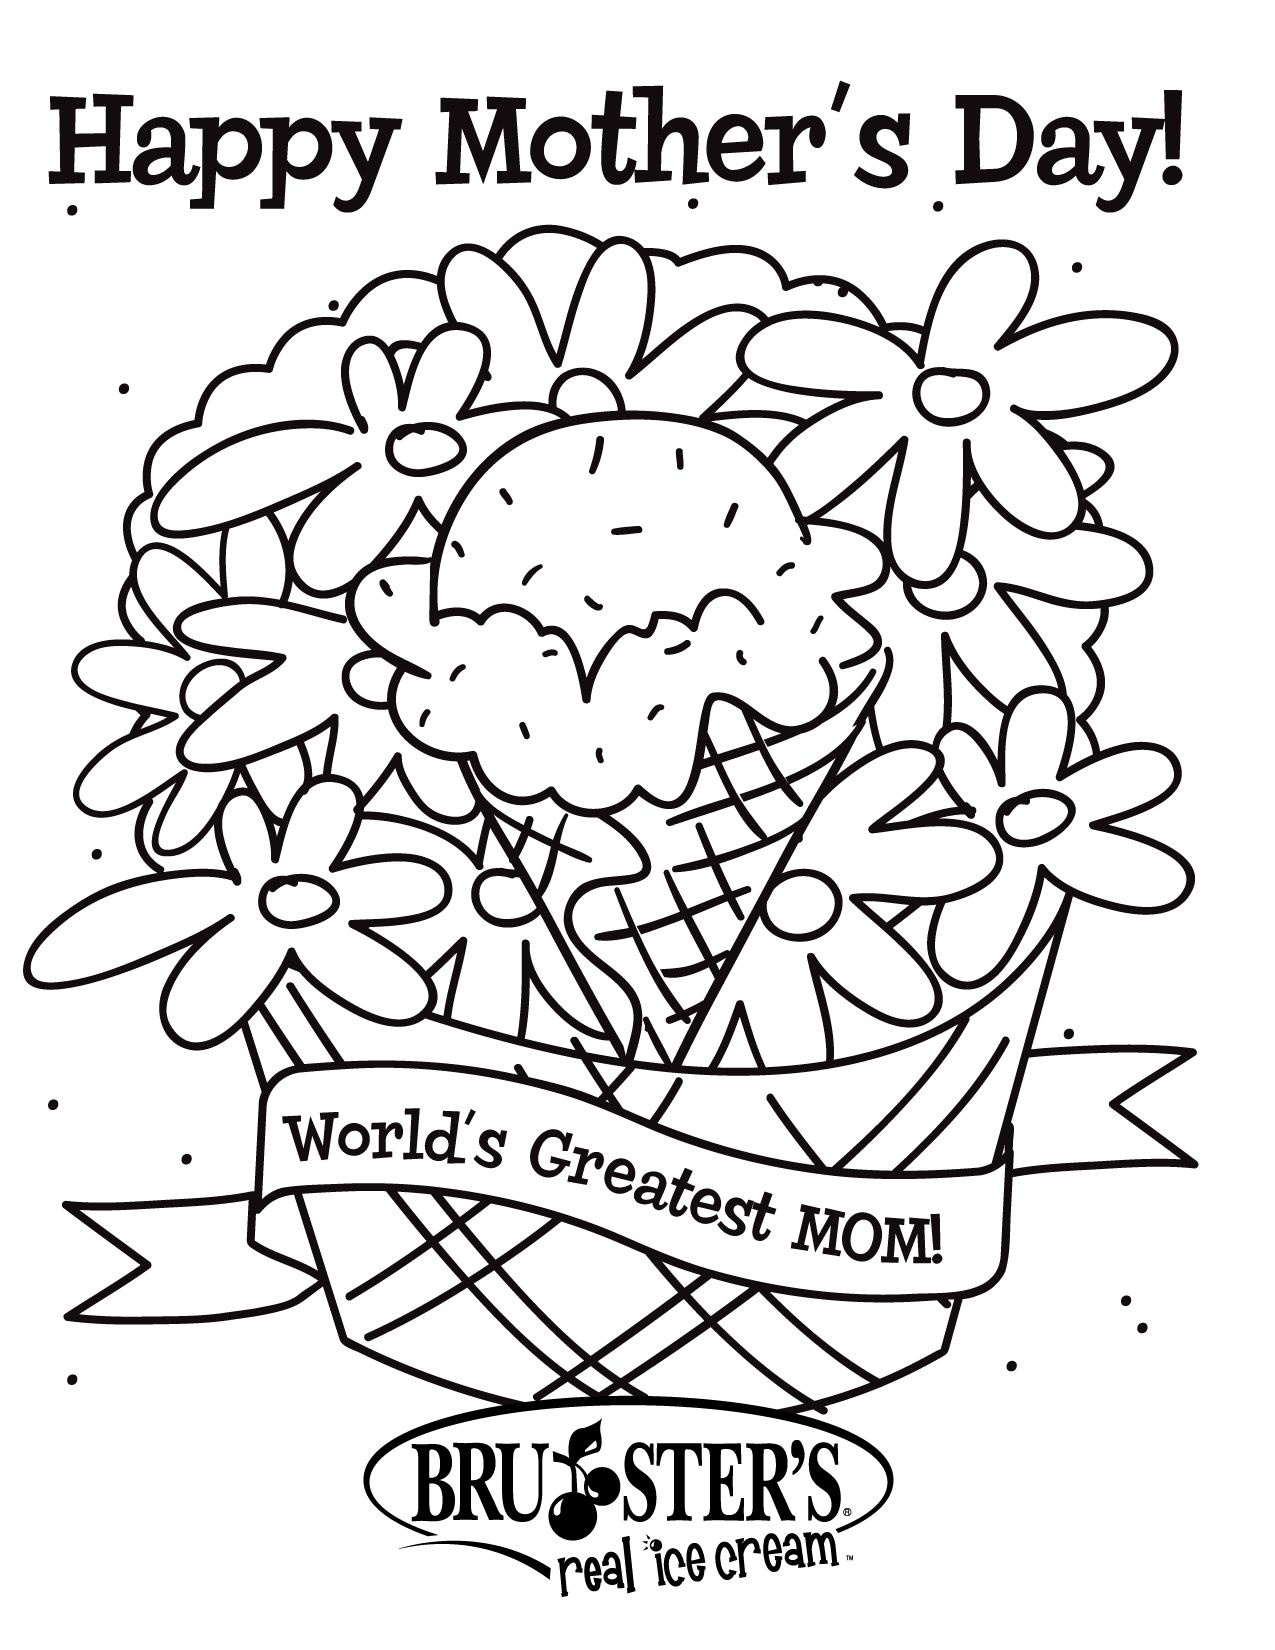 Free Printable Mothers Day Coloring Pages For Kids | Coloring - Free Printable Mothers Day Coloring Pages